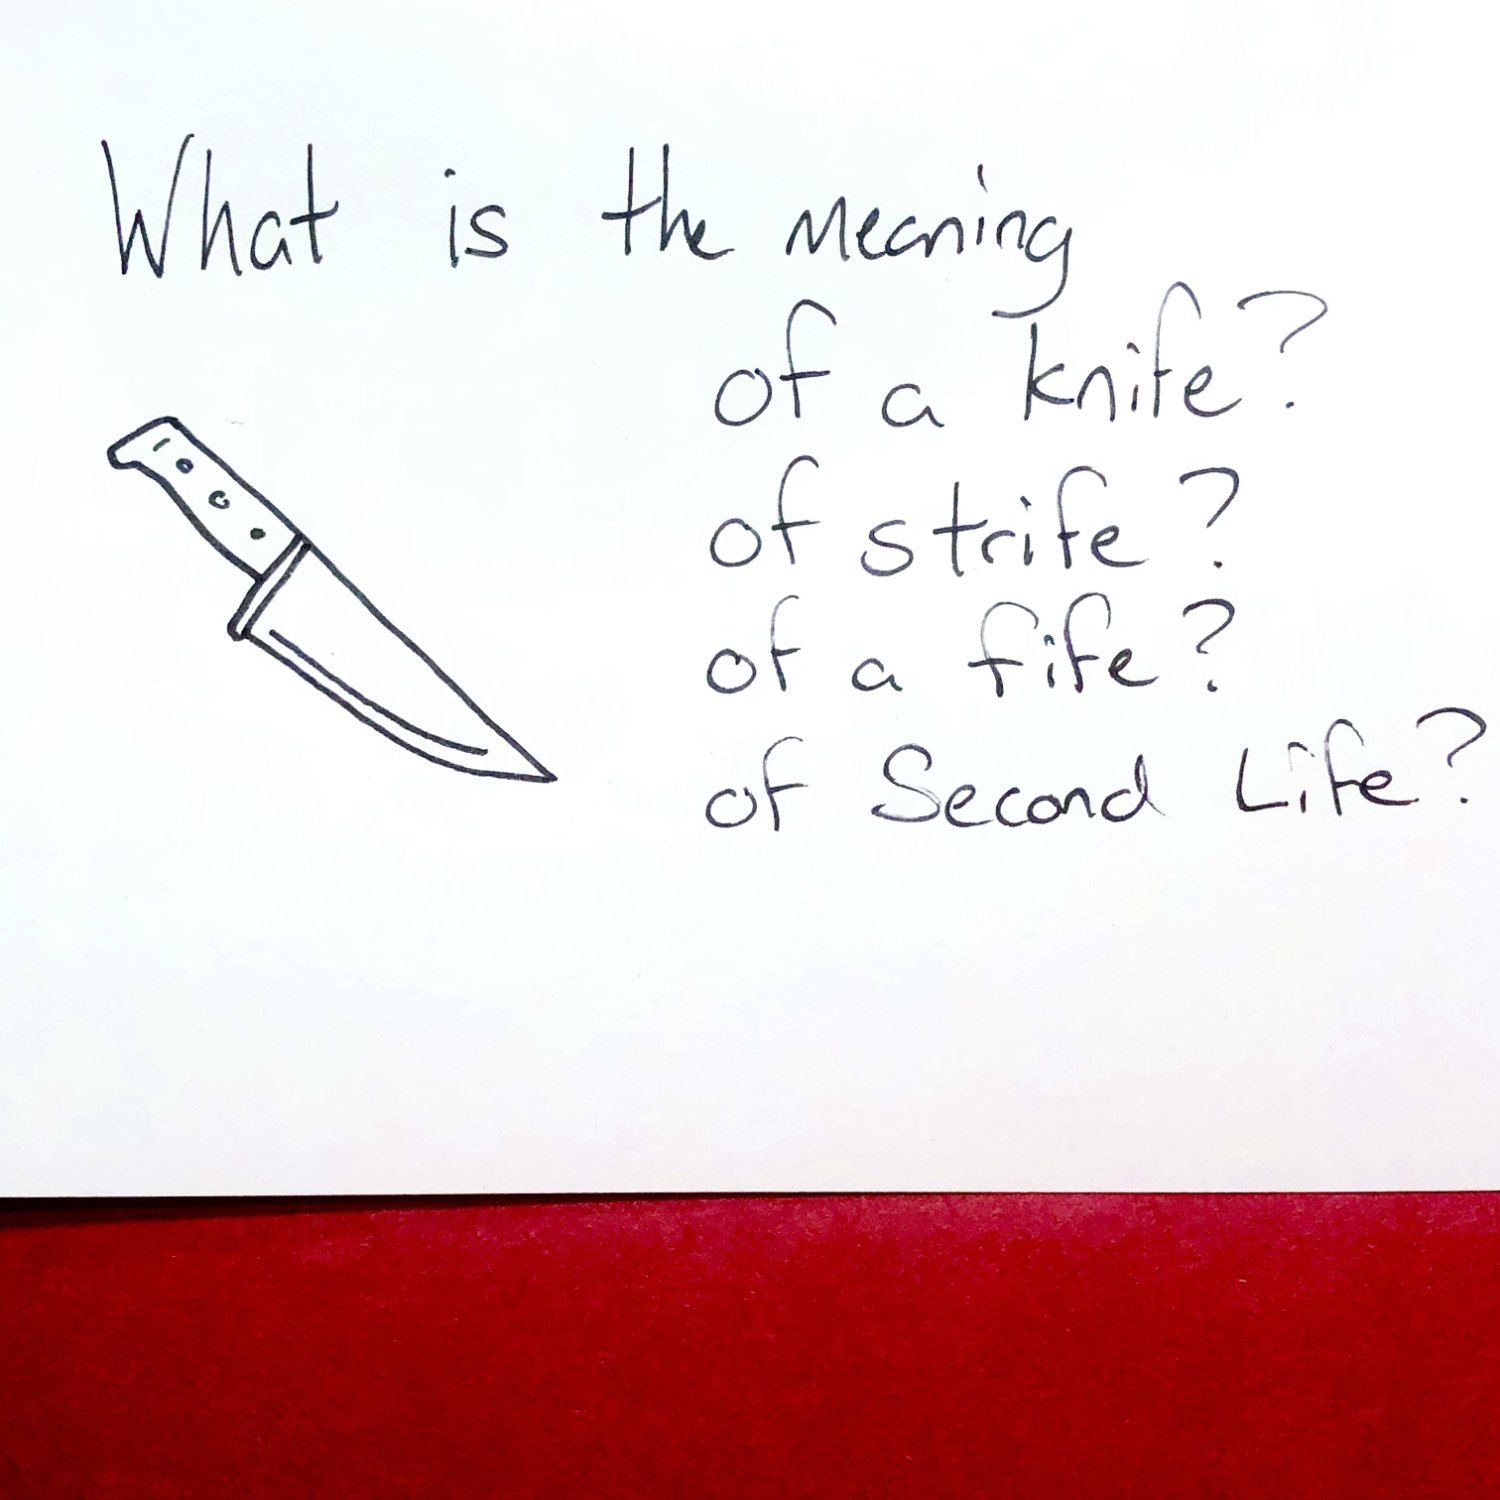 what is the meaning of a knife? of strife? of a fife? of Second Life?